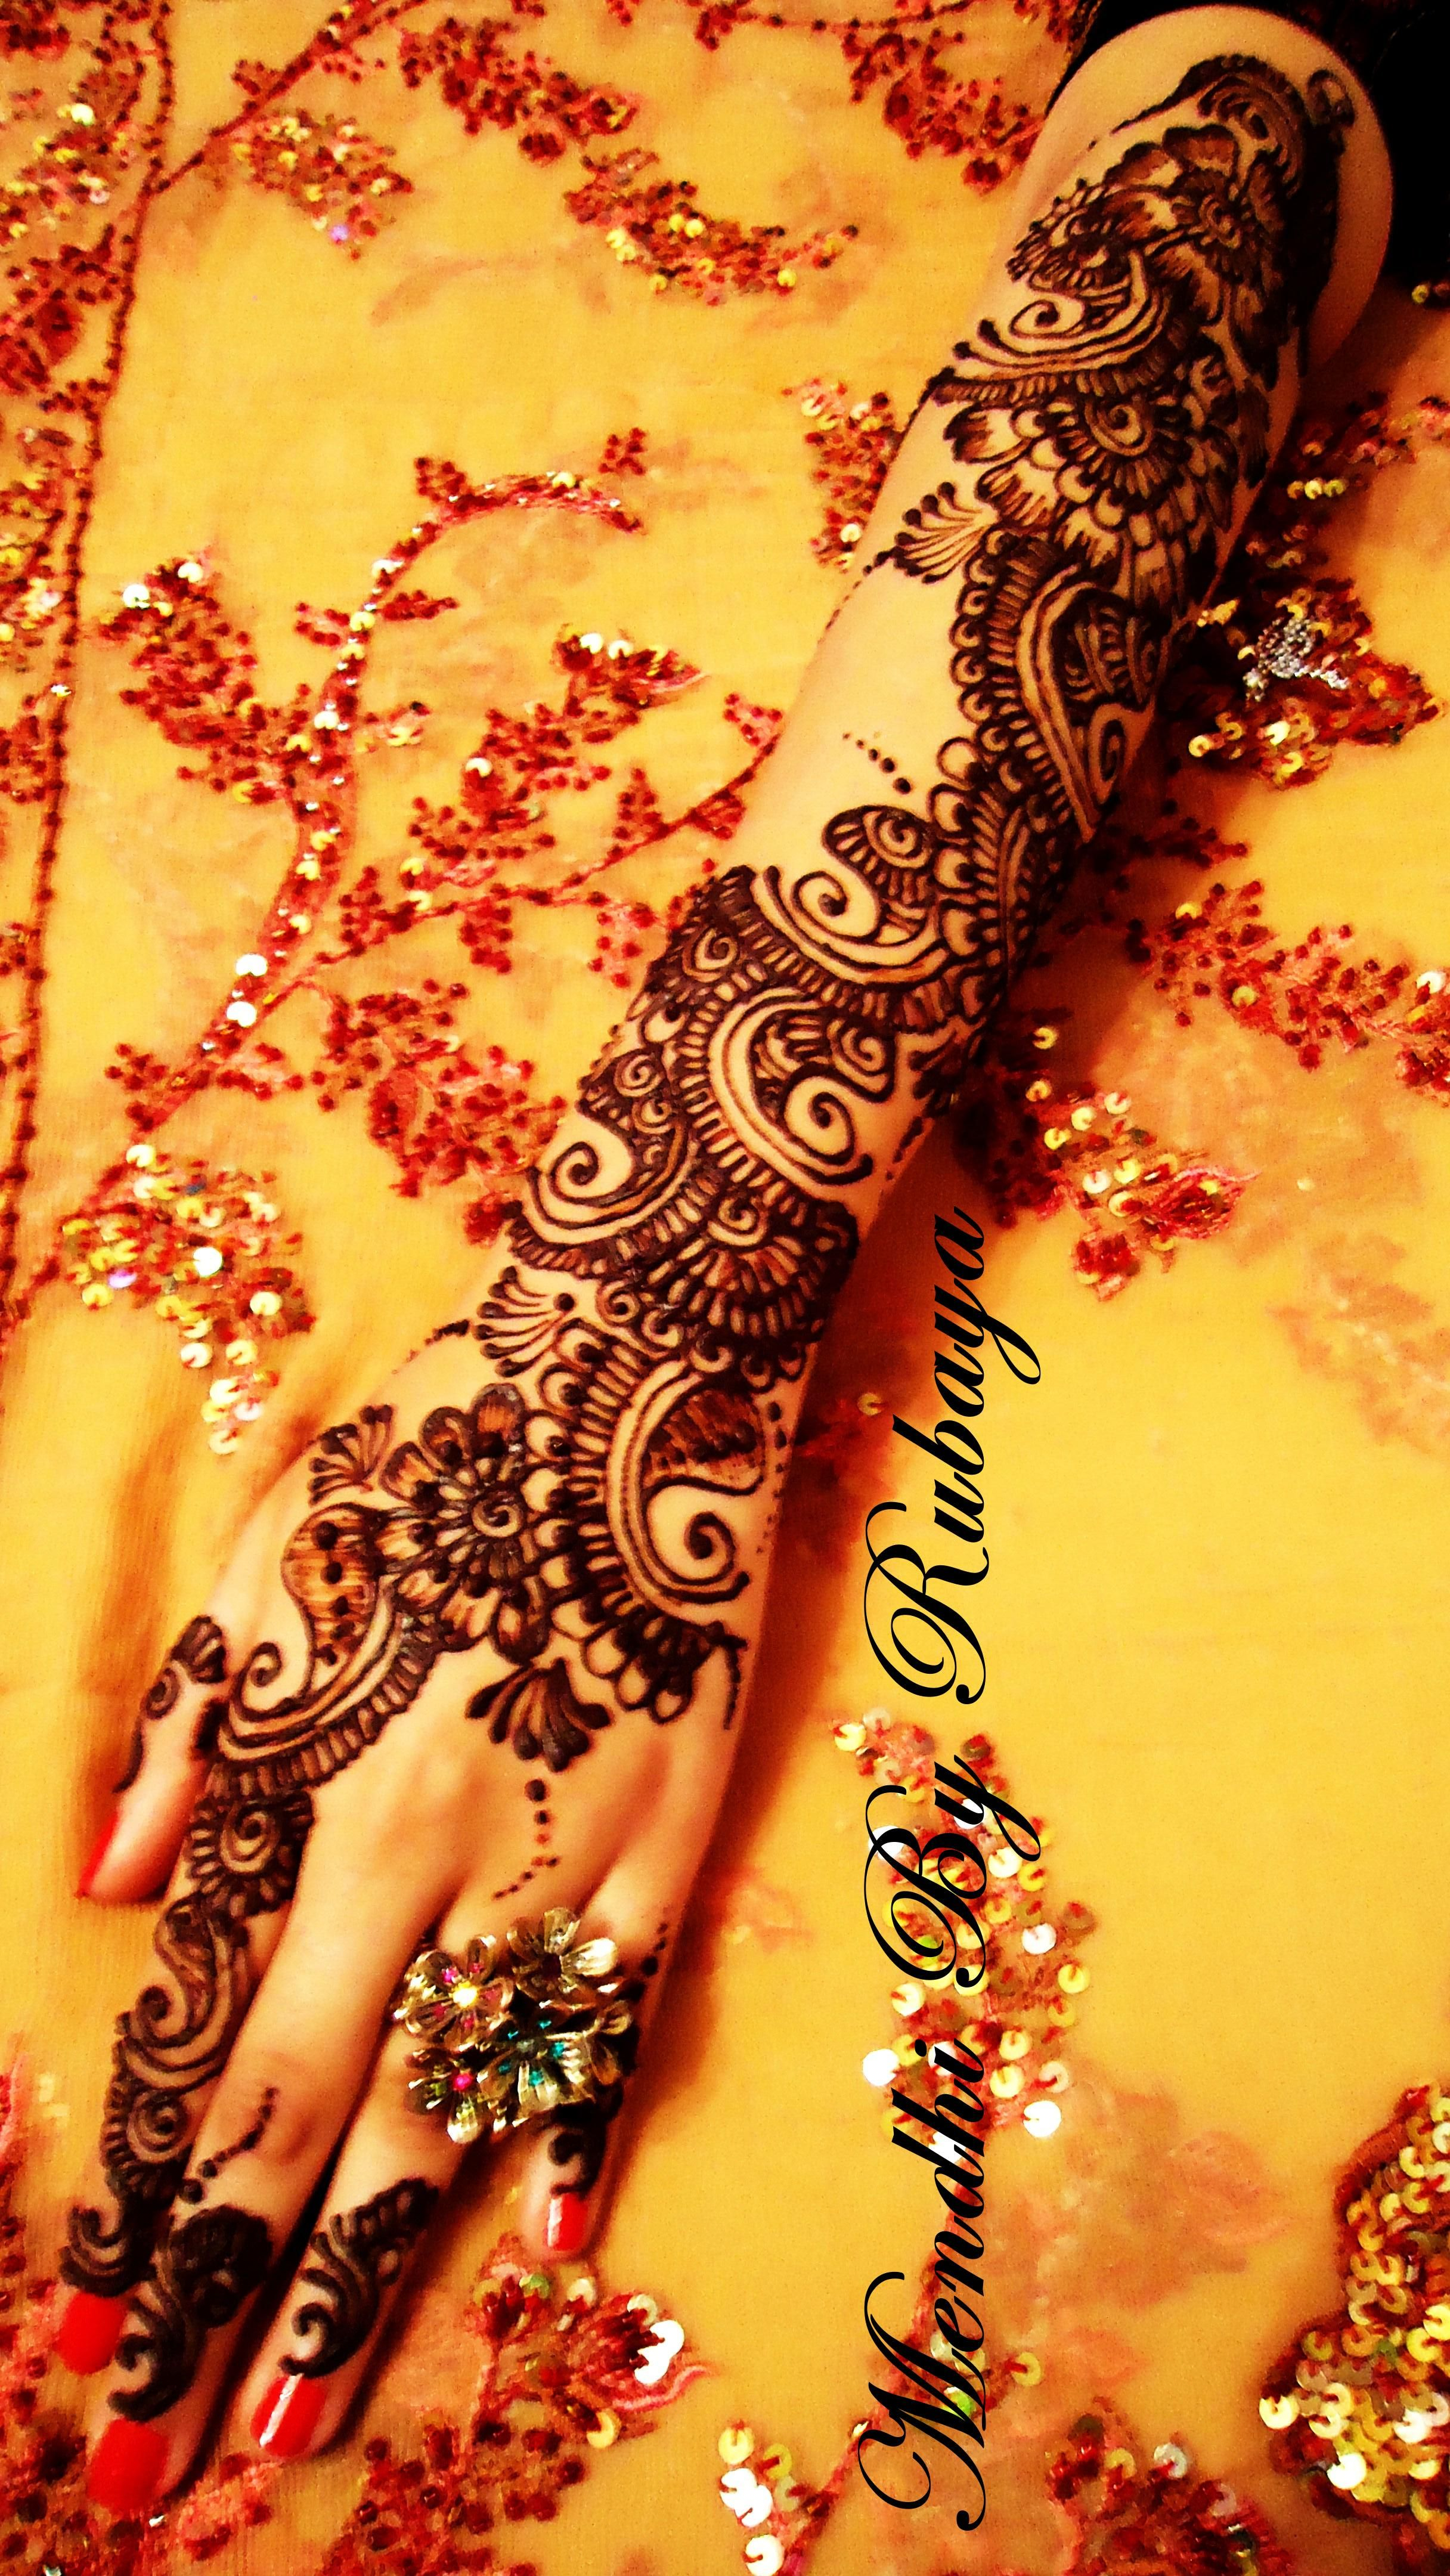 I Am A Freelance Mehndi Artist Based In East London I Specialise In